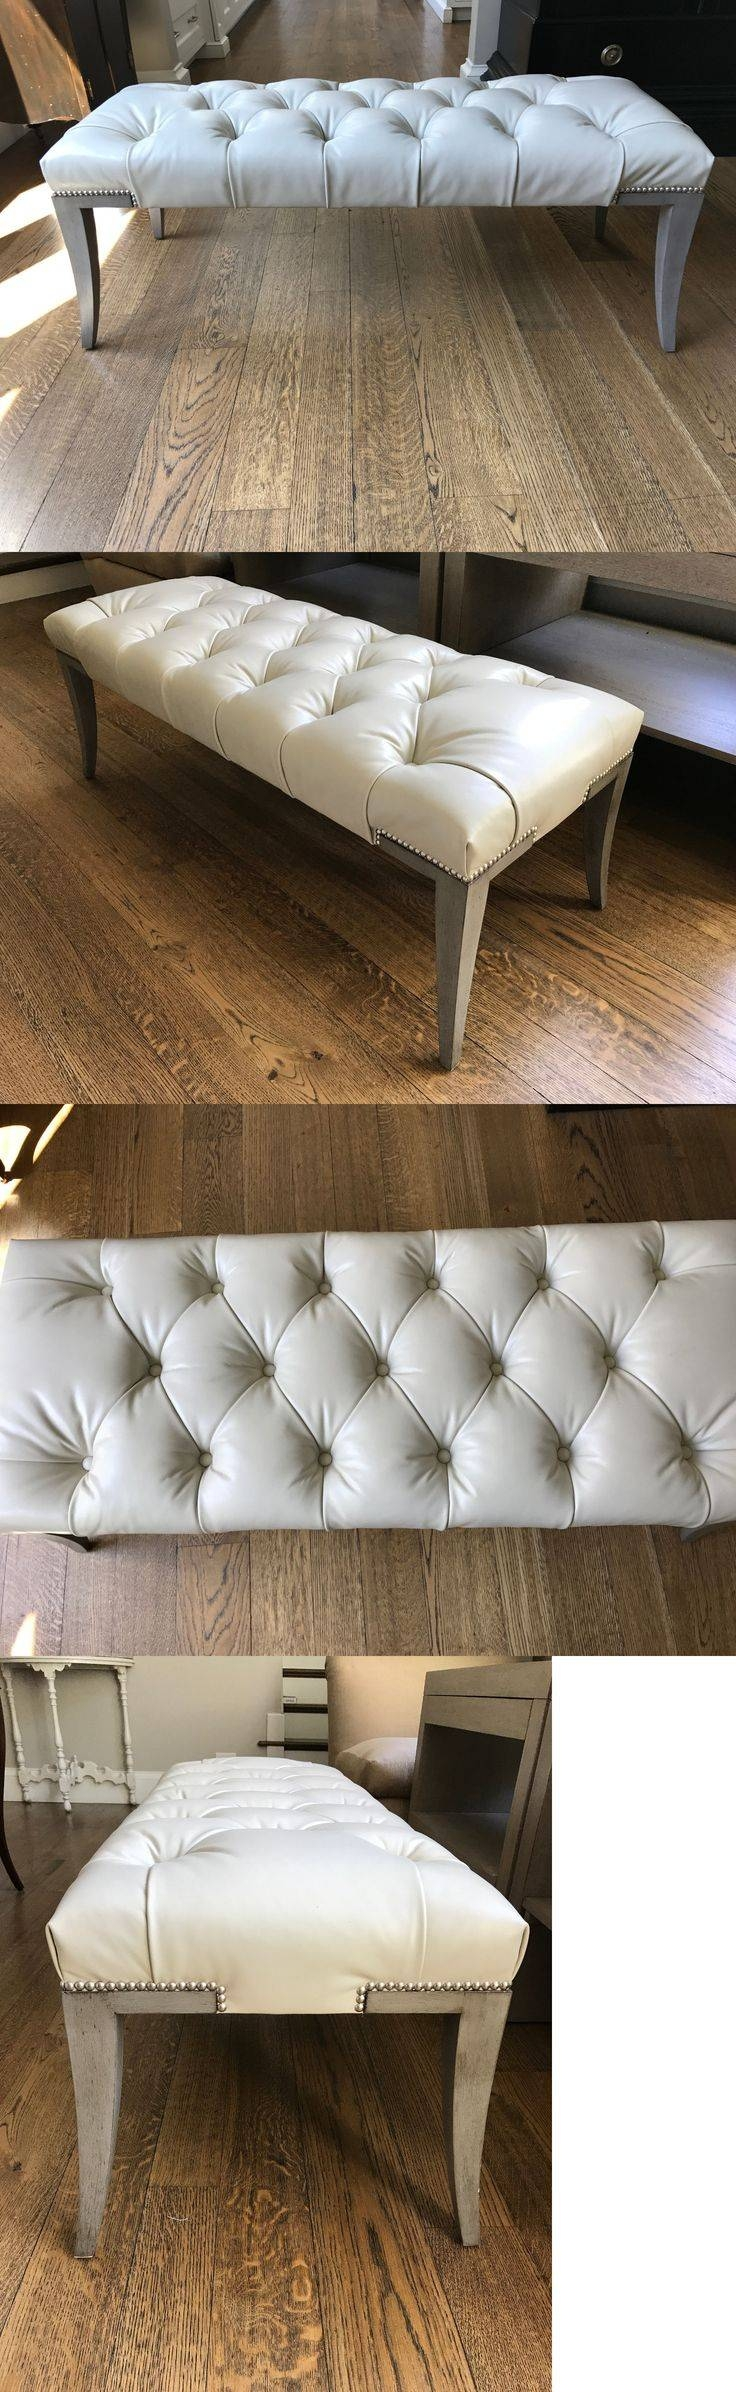 Best 25+ Ottoman Footstool Ideas Only On Pinterest | Ottomans, The with Footstool Pouffe Sofa Folding Bed (Image 3 of 25)